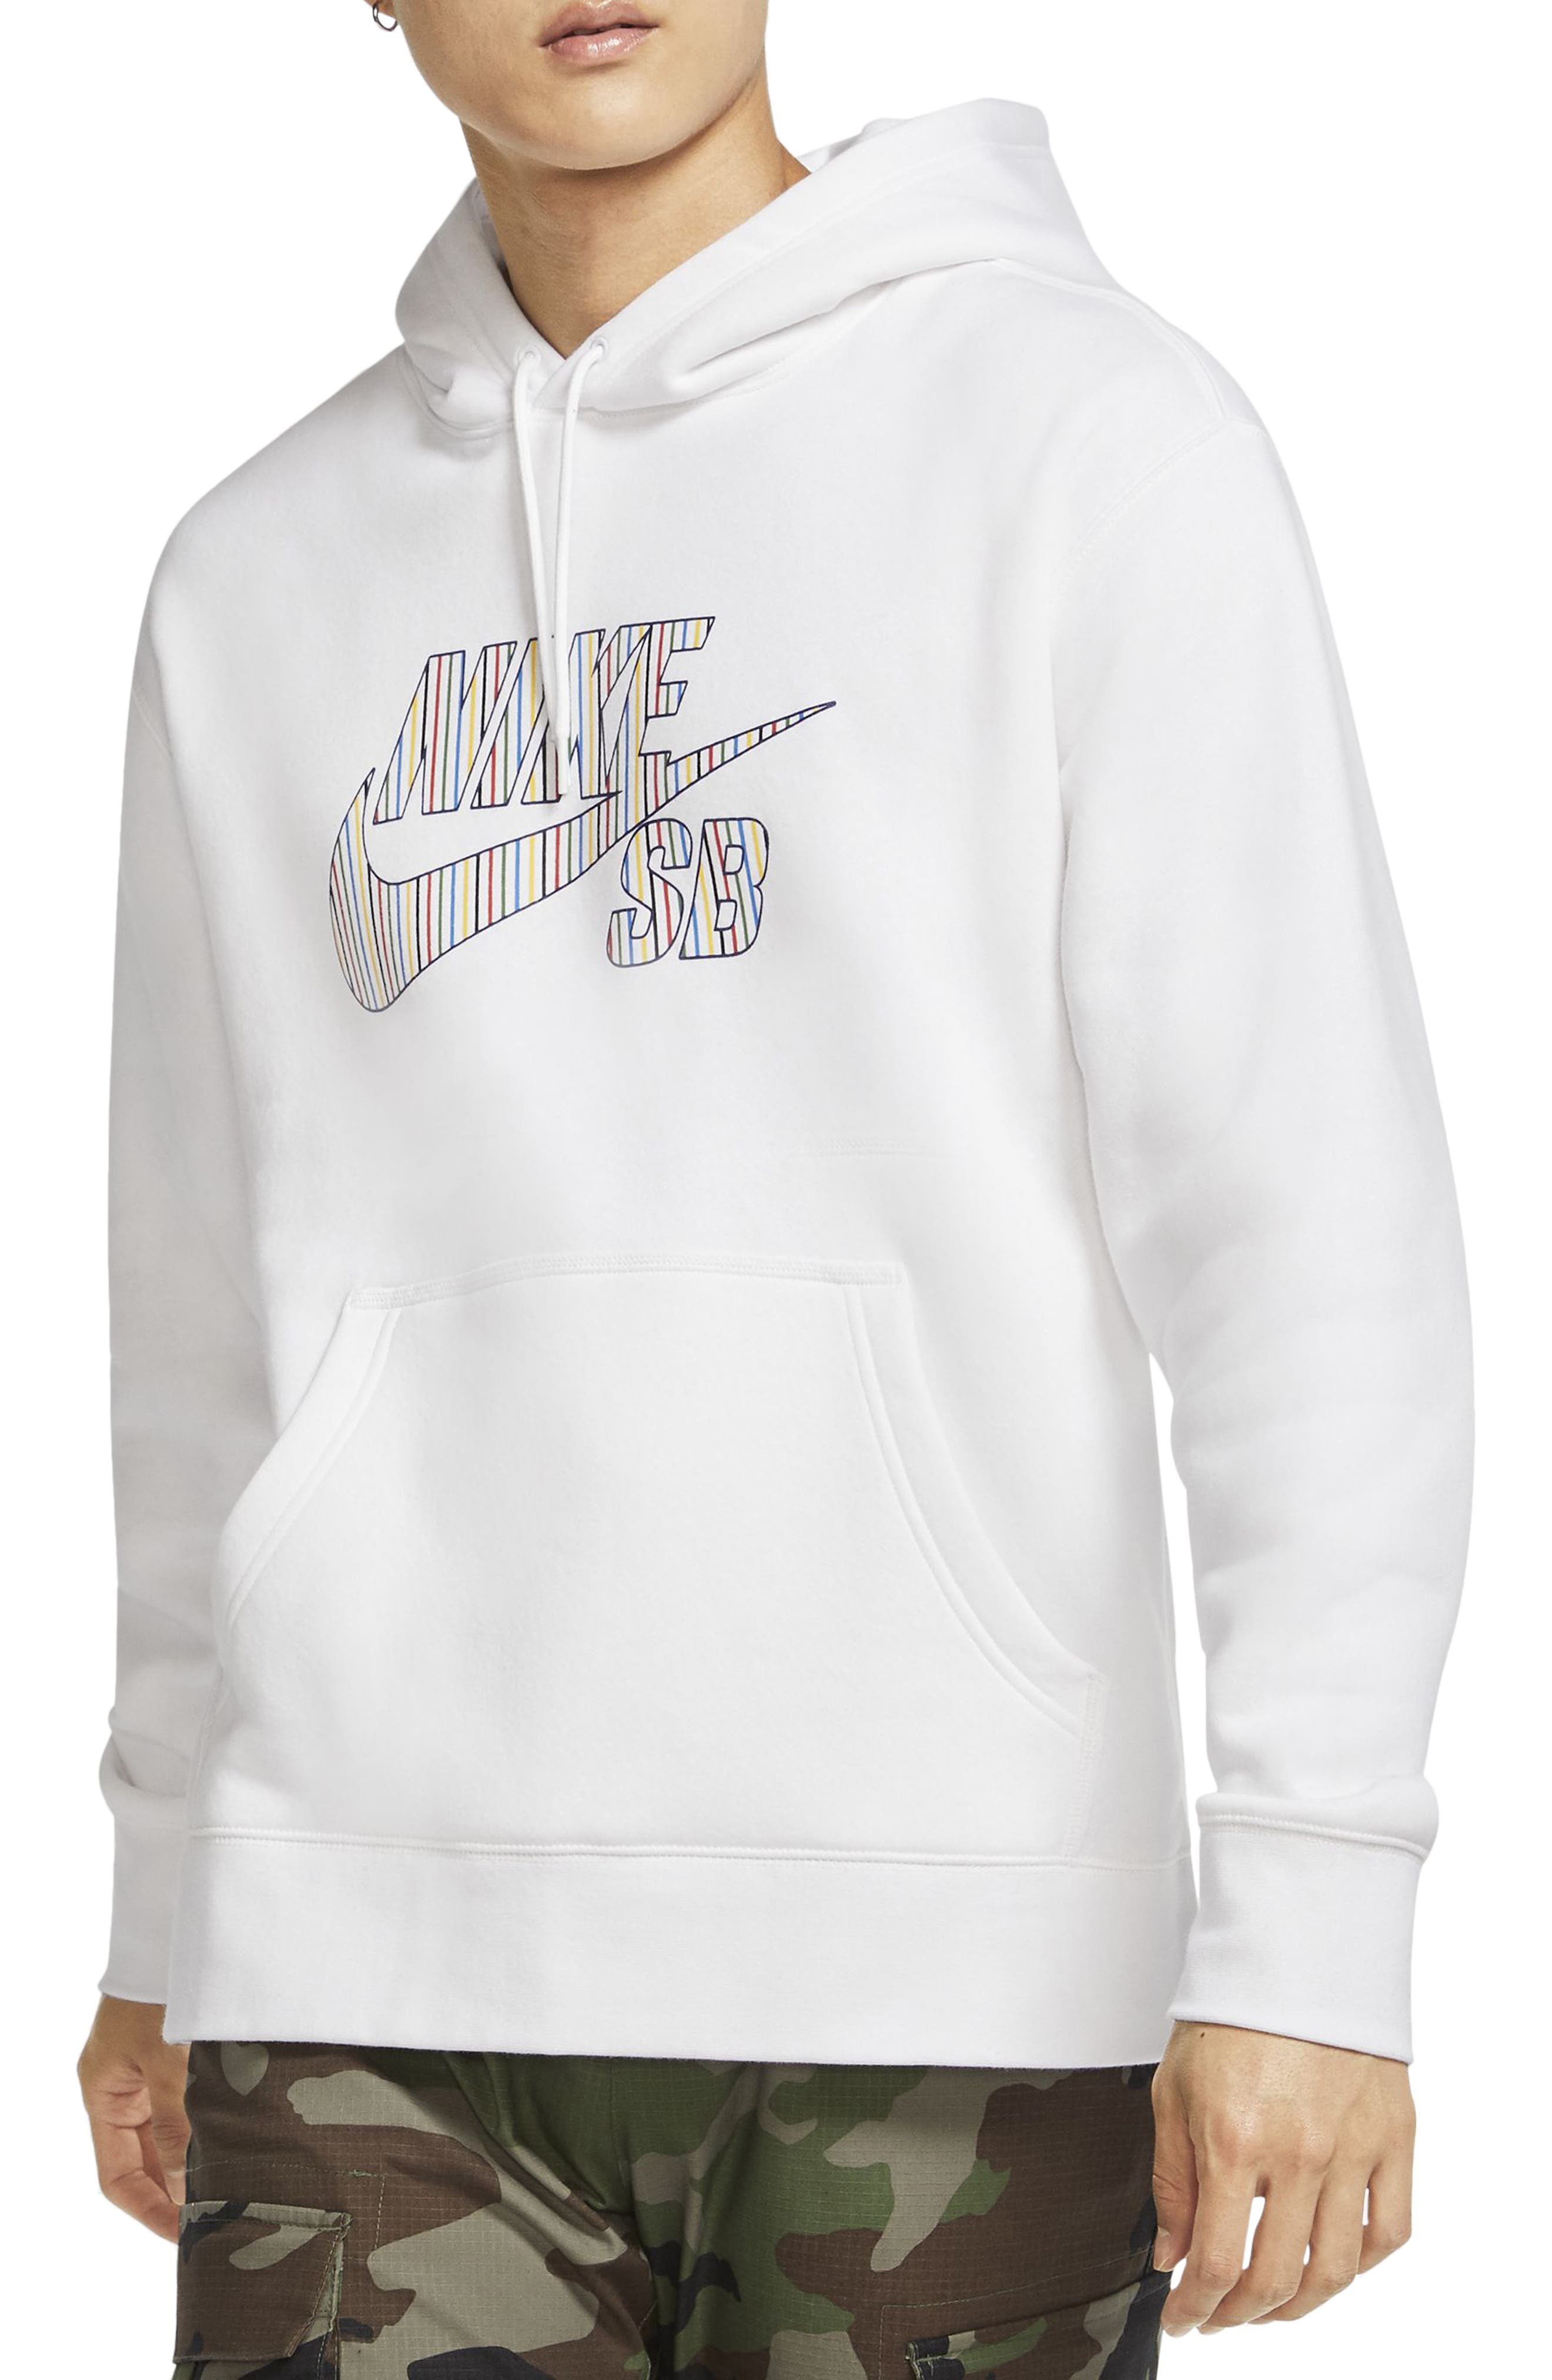 Bright pinstripes skate up and down the Nike SB Swoosh logo dominating a heavyweight sweatshirt cut with plenty of room to let you move on your board and off. Style Name: Nike Sb Stripes Logo Hoodie. Style Number: 6010380. Available in stores.